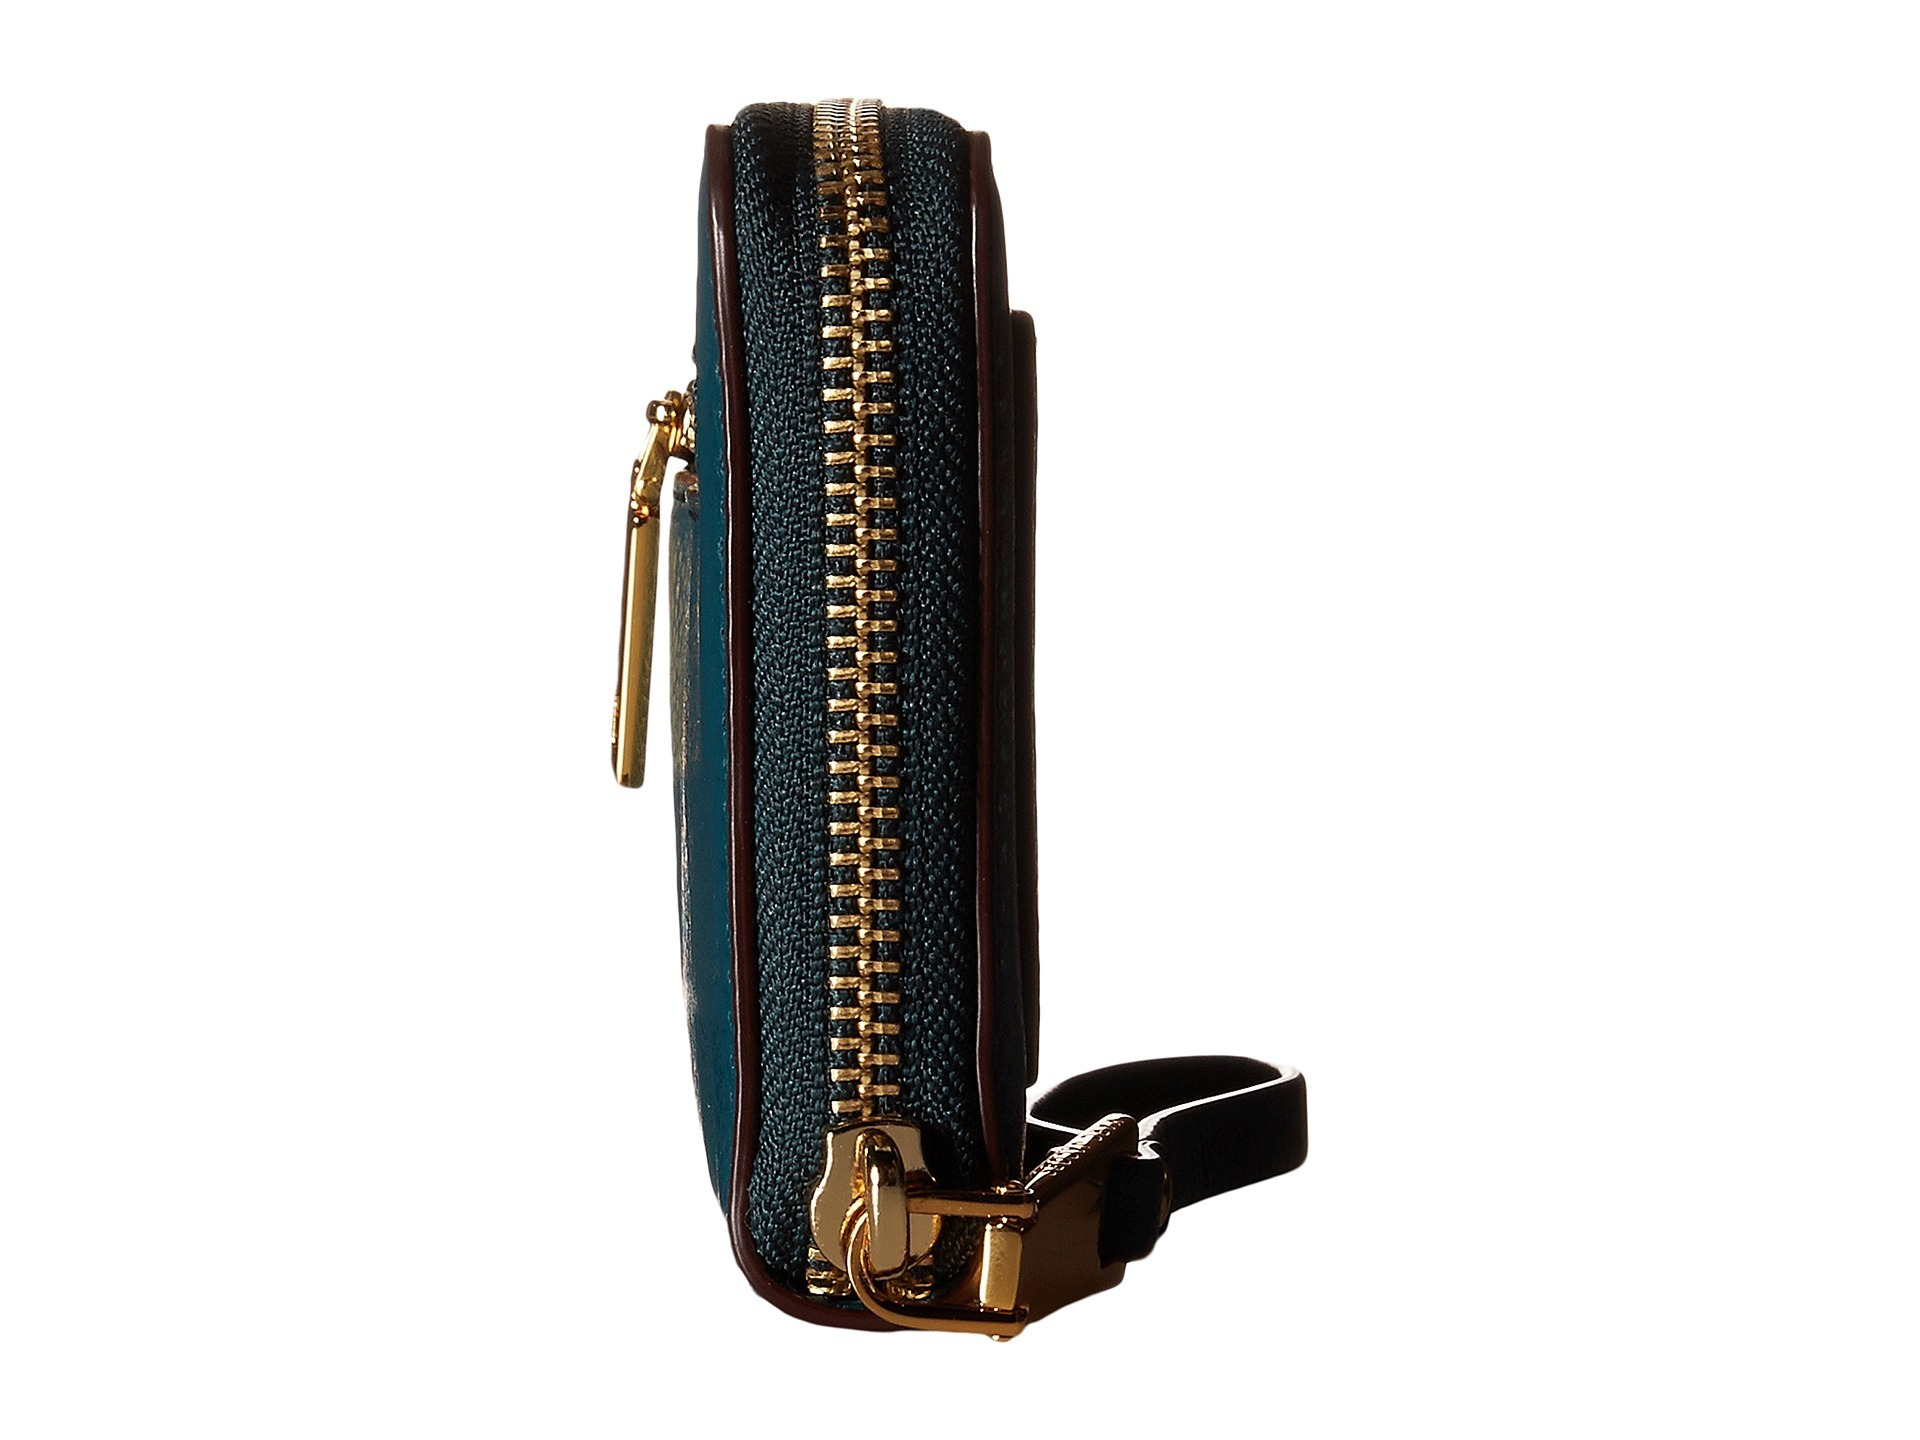 MARC JACOBS 正規品 大人気Recruit Zip Phone Wrist 送料無料